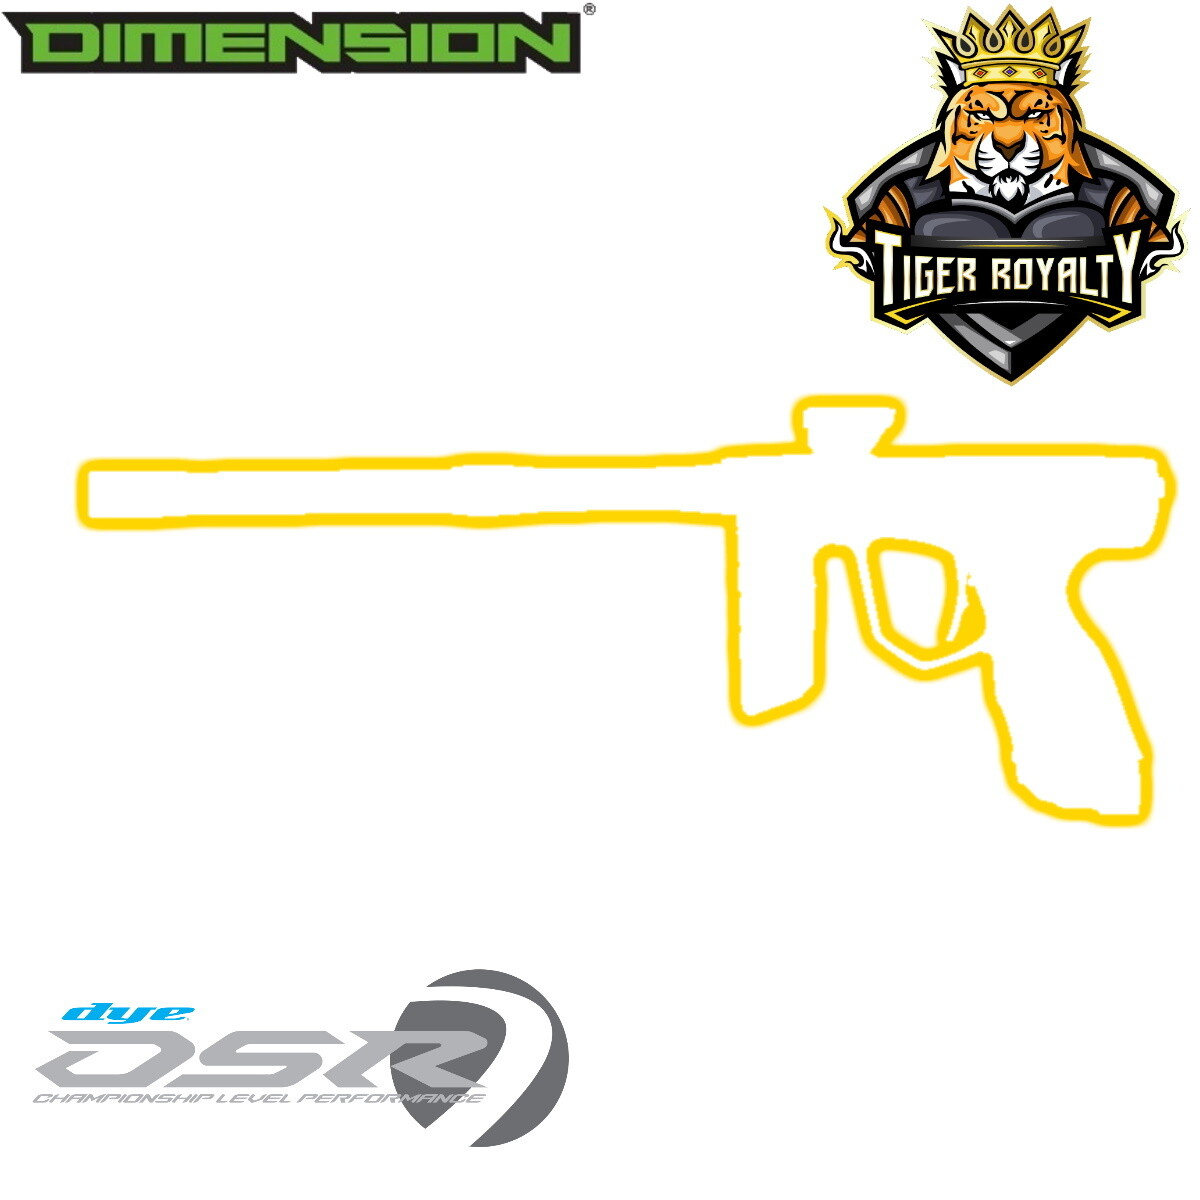 Dye DSR - Dimension Limited Edition 1 of 1 / Tiger Royalty - City of Steel